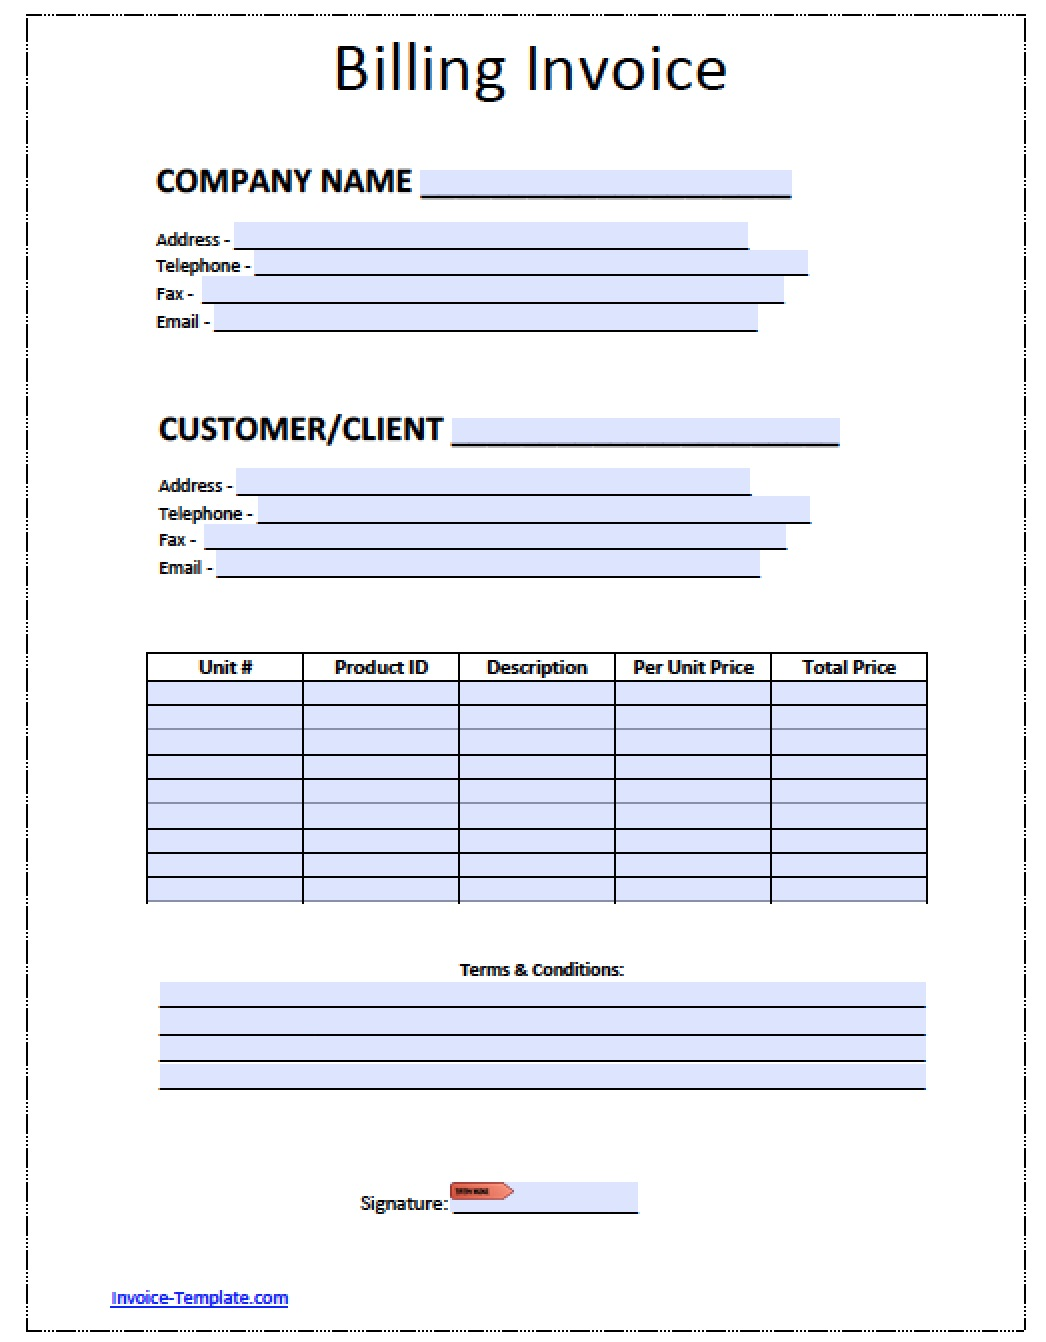 Sandiegolocksmithsus  Mesmerizing Billing Invoice Invoices Faq U Cloudflare Support Billing  With Marvelous Free Billing Invoice Template  Excel  Pdf  Word Doc  Billing With Easy On The Eye Commercial Invoice Form Also Invoice Paper In Addition Invoice Template For Word And Custom Invoice Books As Well As Invoice Finance Additionally Invoice Images From Happytomco With Sandiegolocksmithsus  Marvelous Billing Invoice Invoices Faq U Cloudflare Support Billing  With Easy On The Eye Free Billing Invoice Template  Excel  Pdf  Word Doc  Billing And Mesmerizing Commercial Invoice Form Also Invoice Paper In Addition Invoice Template For Word From Happytomco